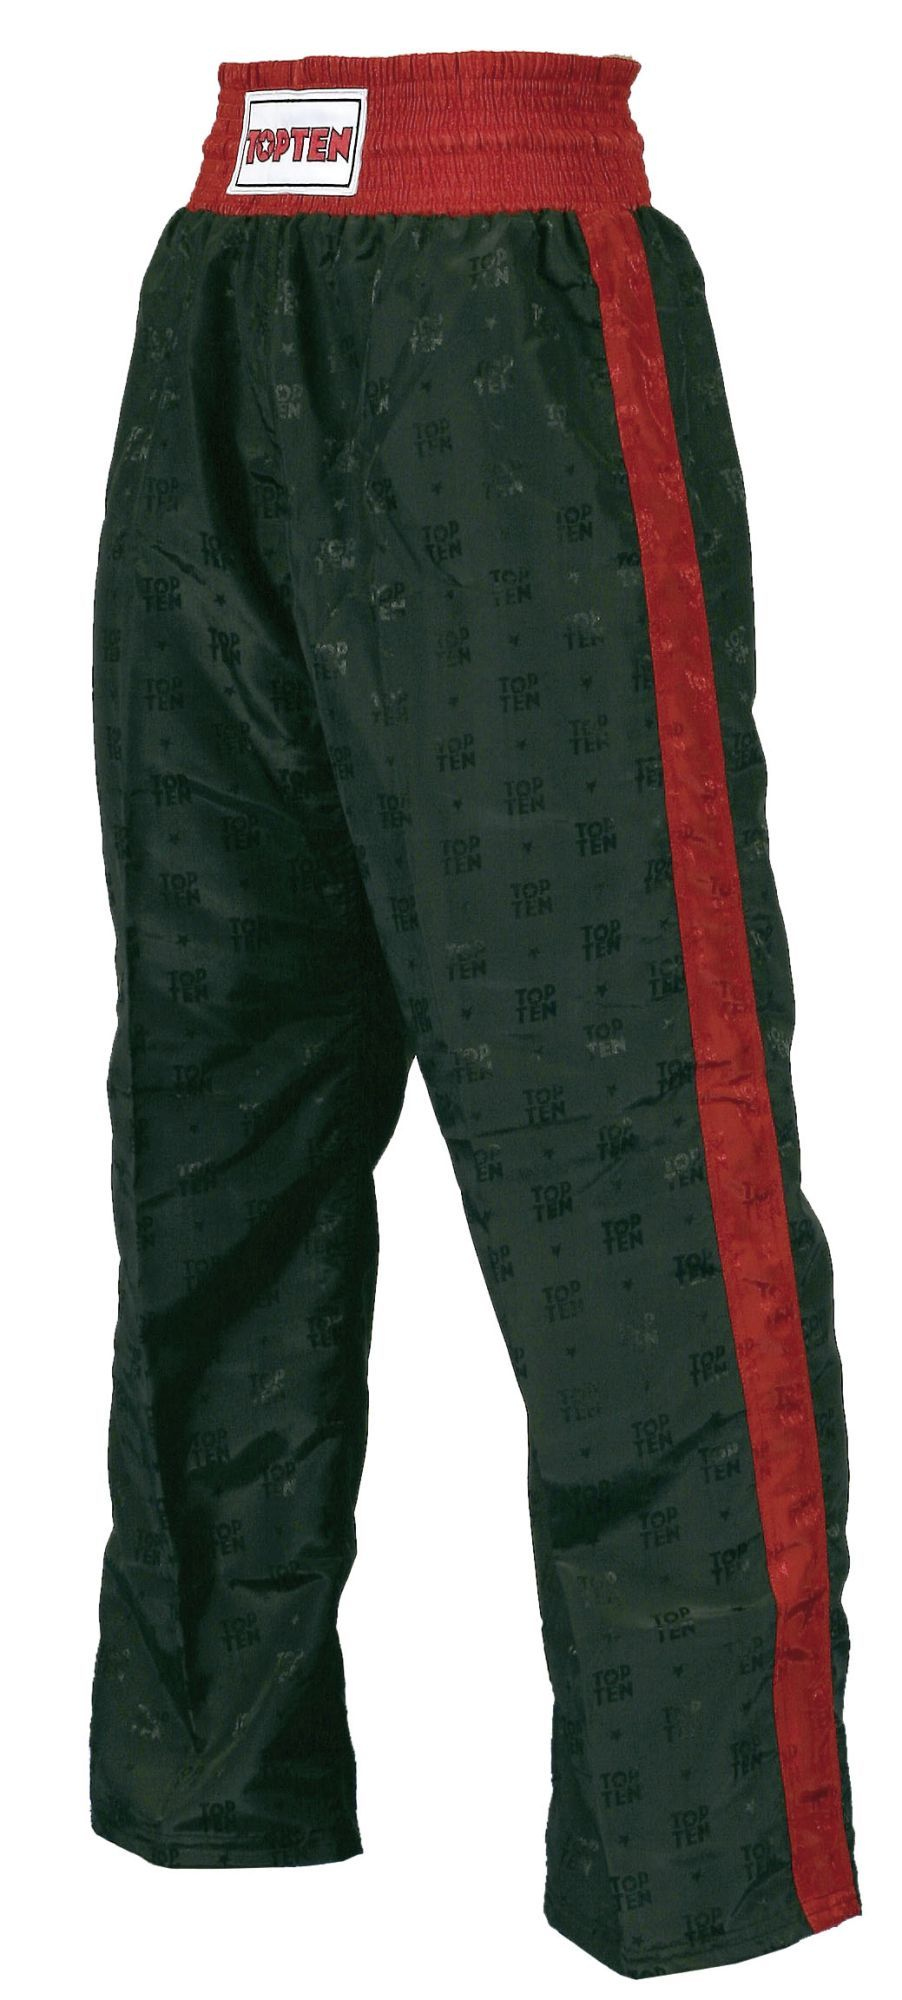 Top Ten Kickboxing Pants Black with Red Stripe